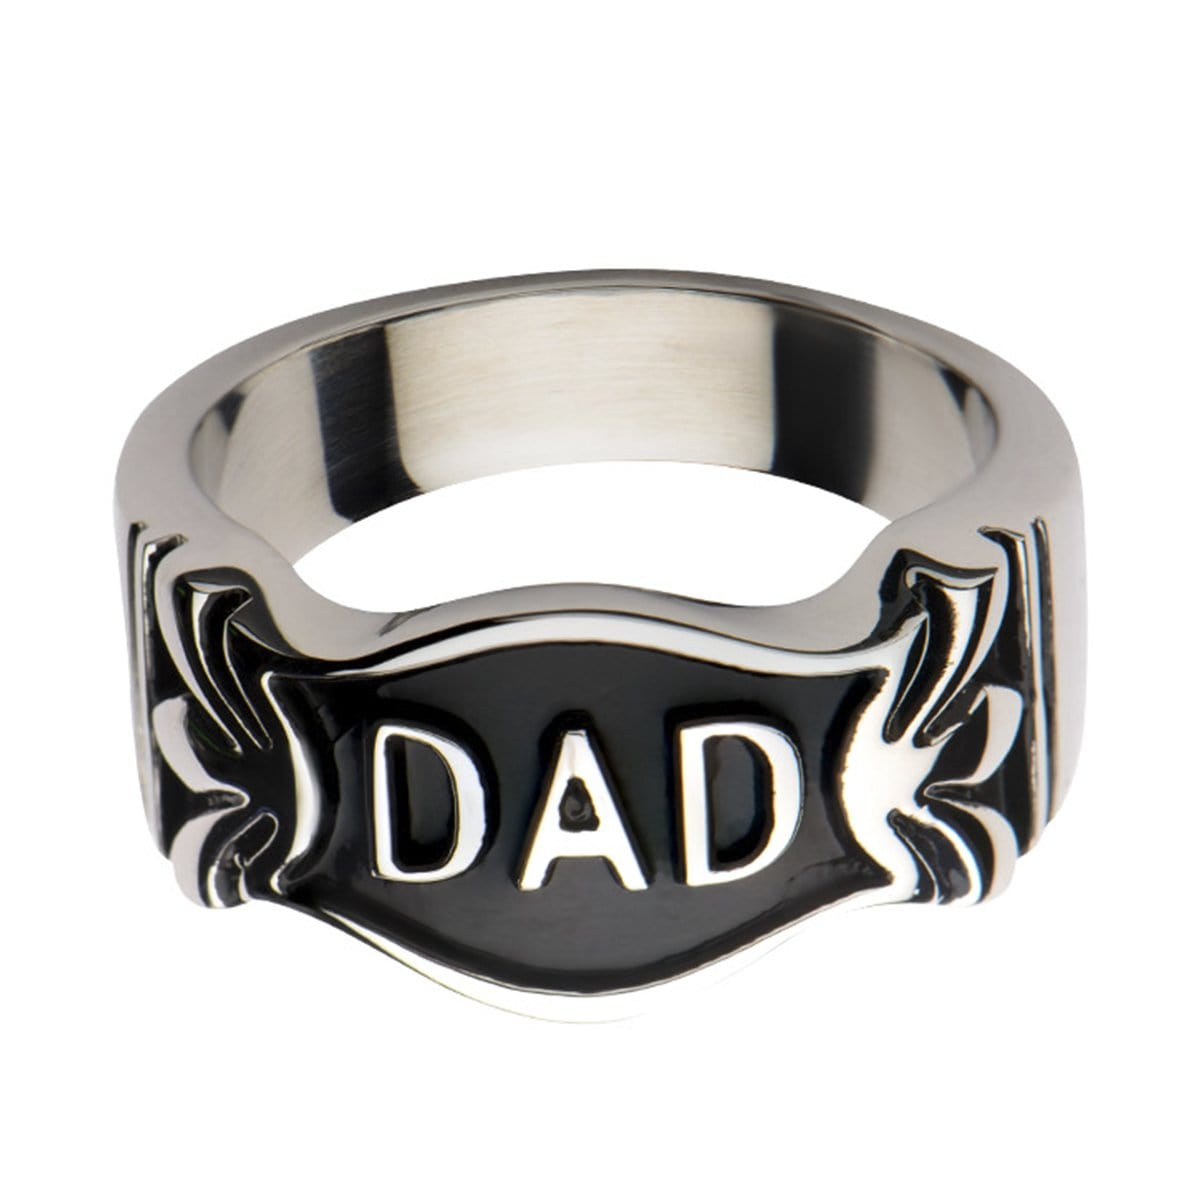 Black & Silver Stainless Steel DAD Emblem Ring